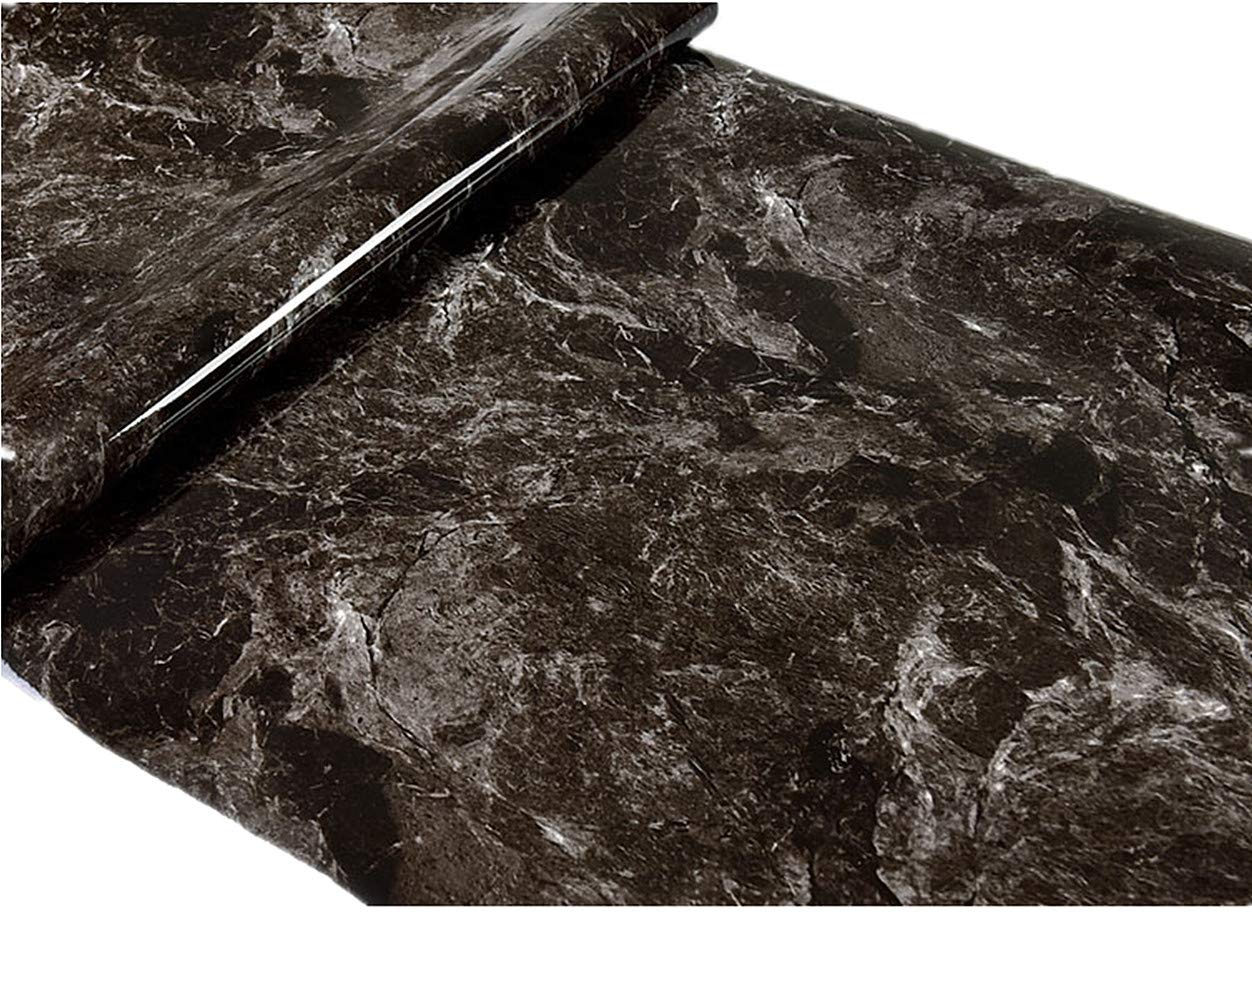 Emoyi Black Brown Granite Look Marble Effect Contact Paper Waterproof Self Adhesive Sticker for Shelf Liners Decor 24''x79''